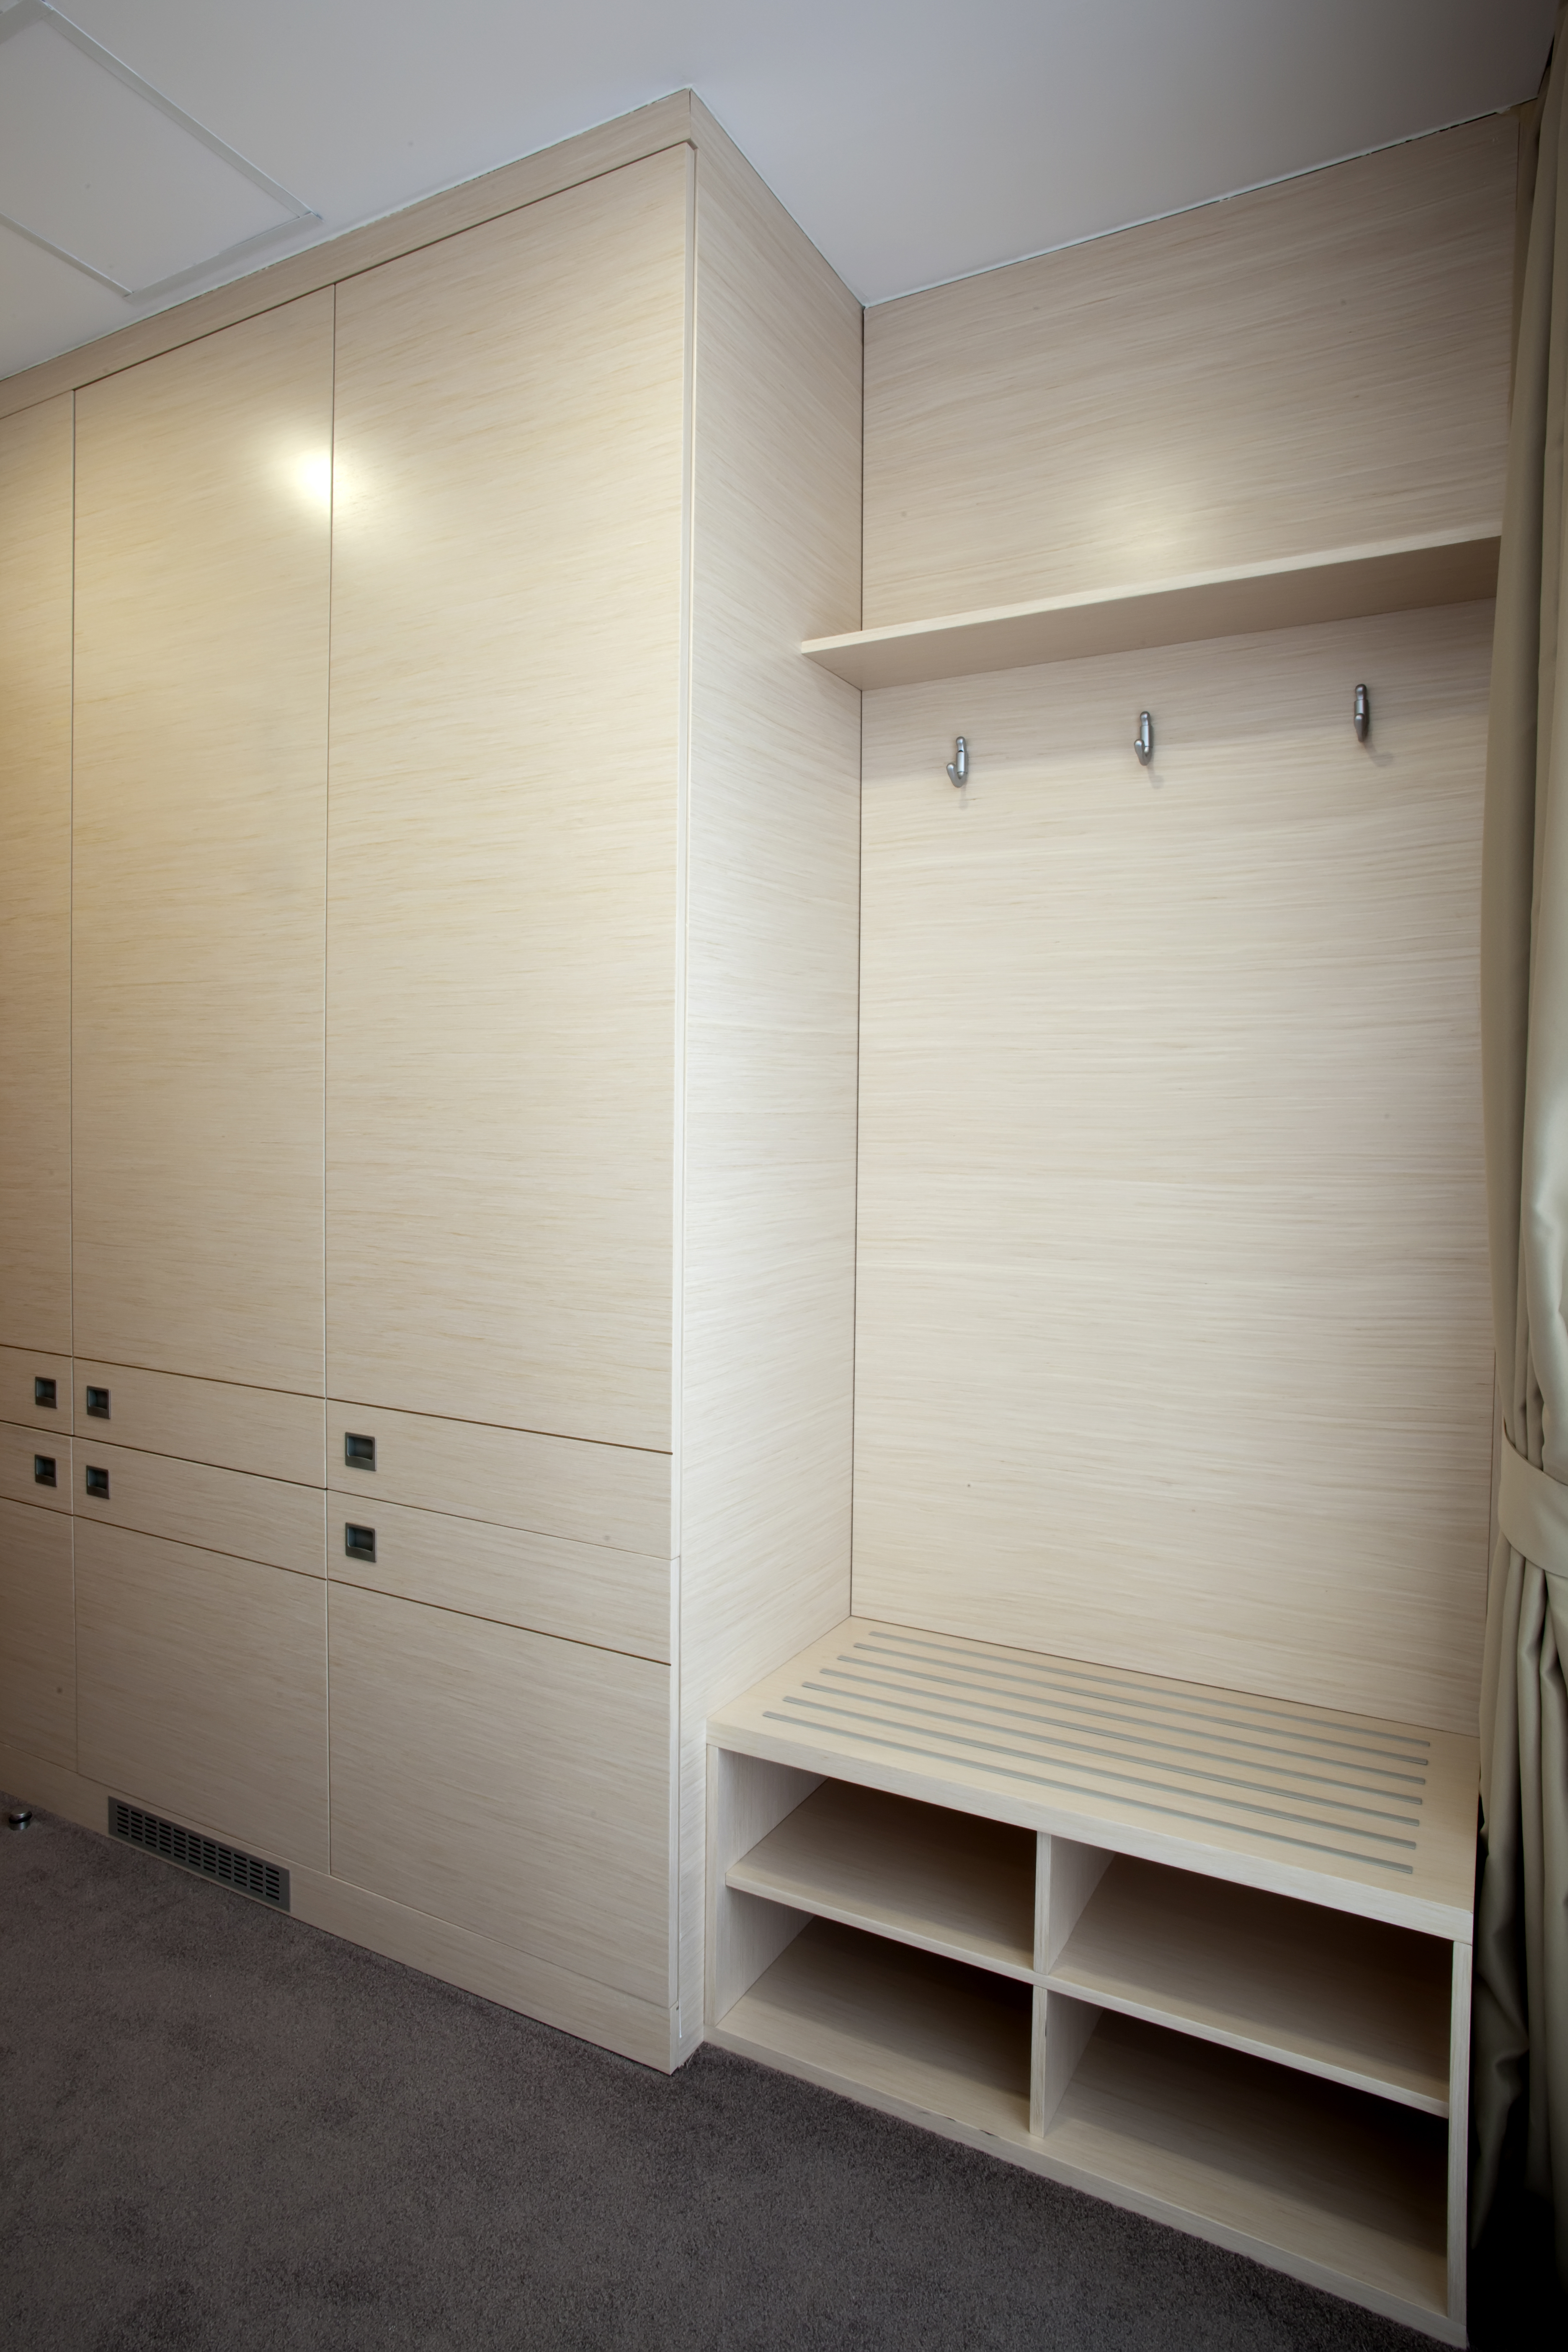 Made to measure fitted wardrobes, shoe storage space and open hanging solution for overall heavy jackets